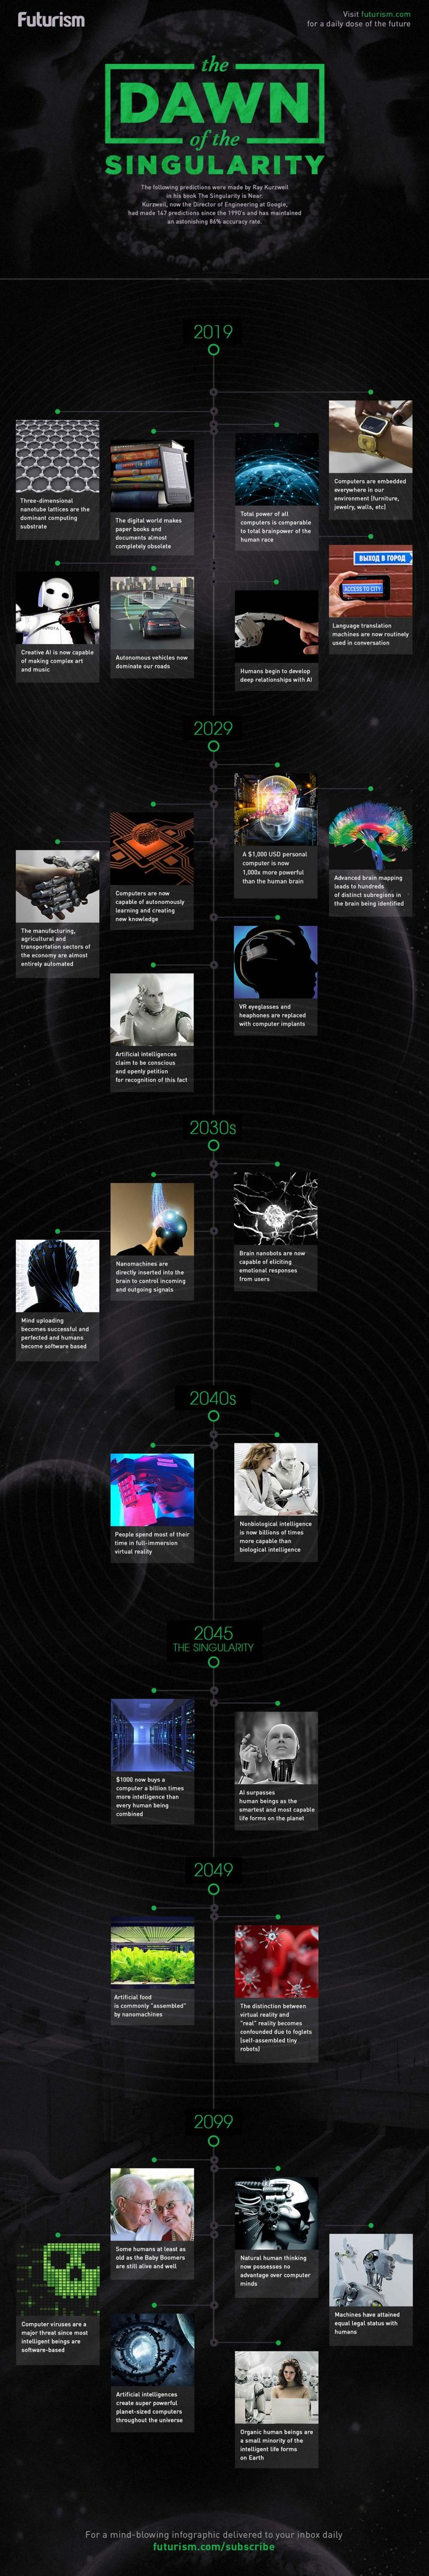 The Dawn of the Singularity: A Visual Timeline of Ray Kurzweil's Predictions - Futurism